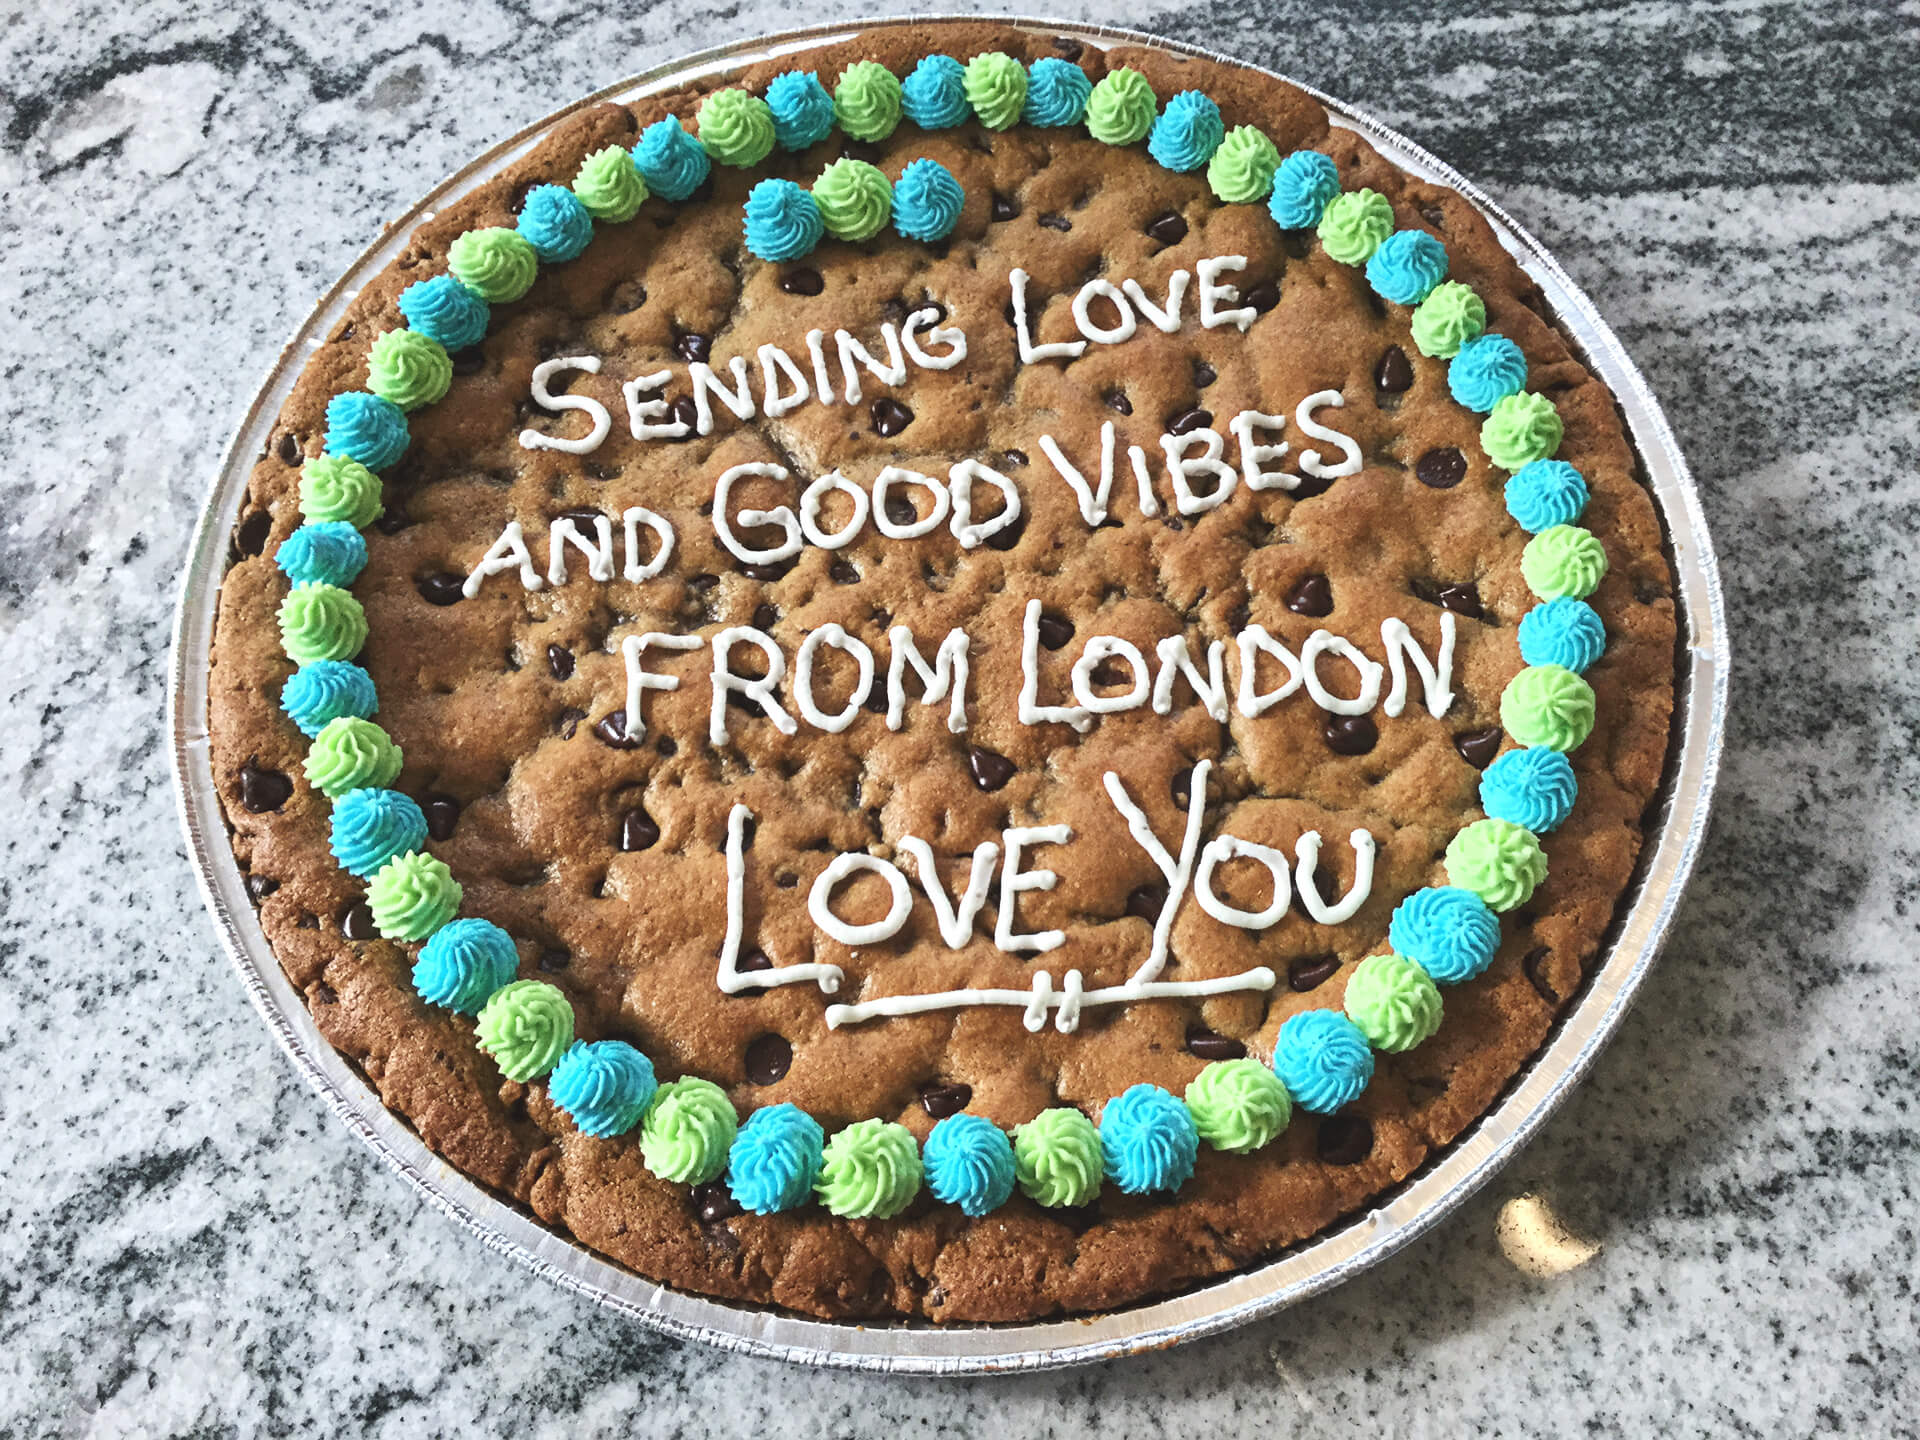 Sending good vibes with a cookiegram